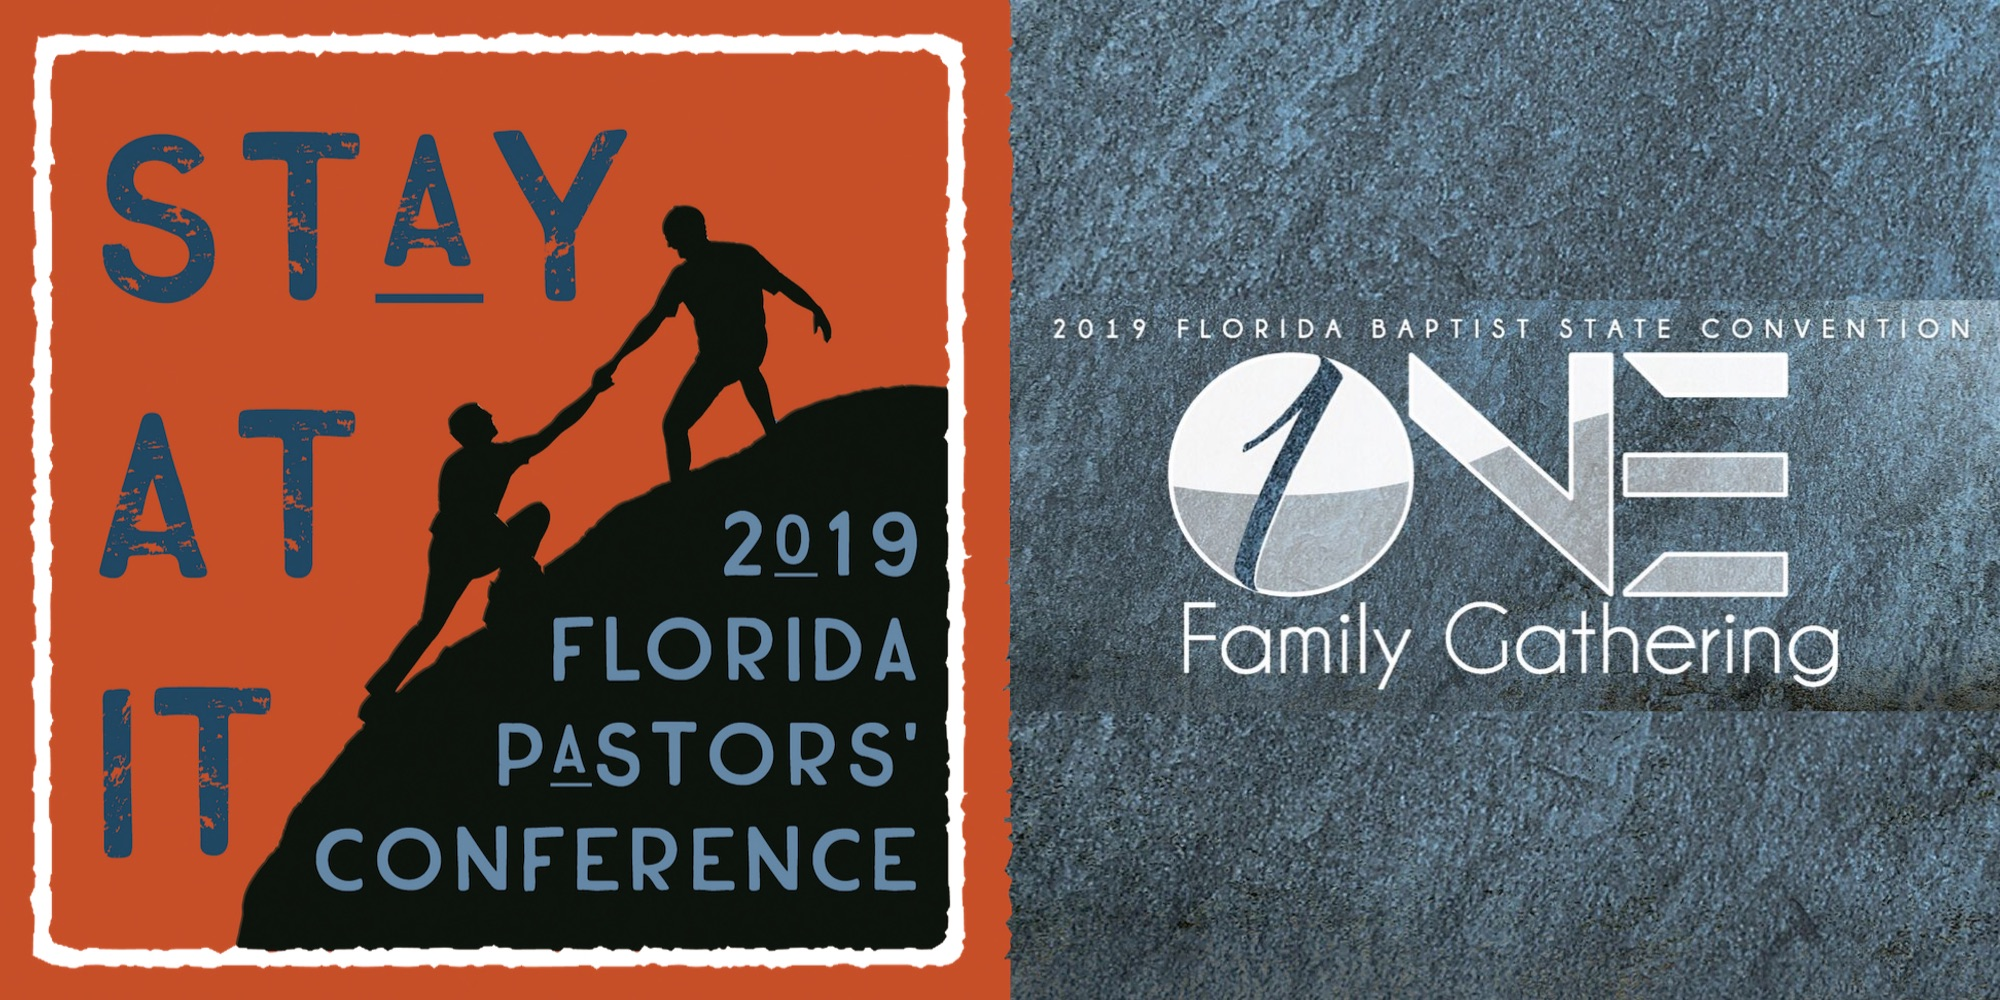 Florida Baptist State Convention, Annual Meeting, Pastors' Conference